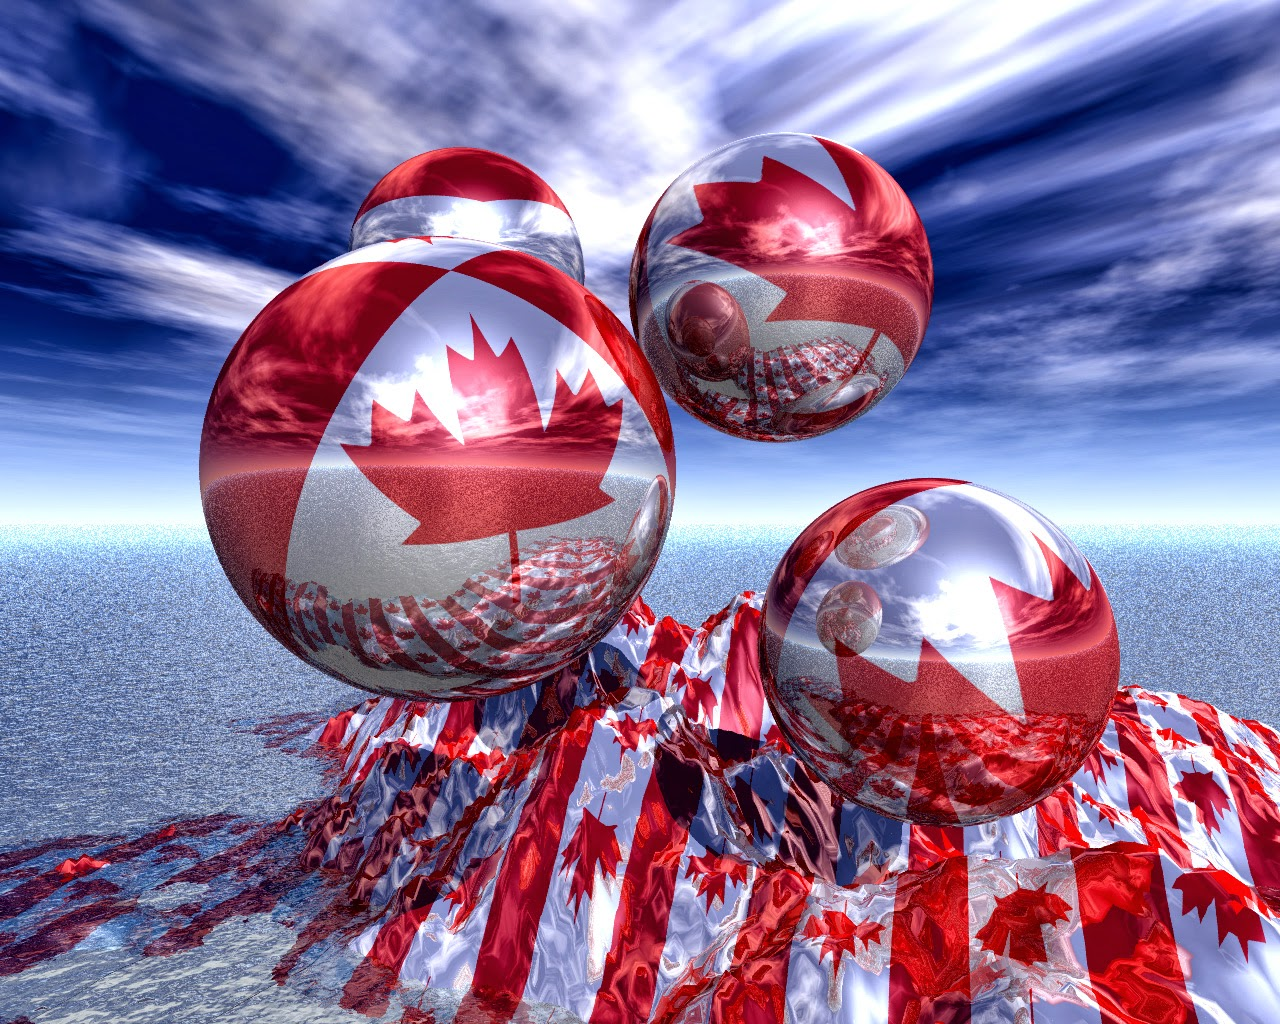 Canadian flag wallpapers national flag of canada hd wallpapers pictures or images - Canada flag 3d wallpaper ...